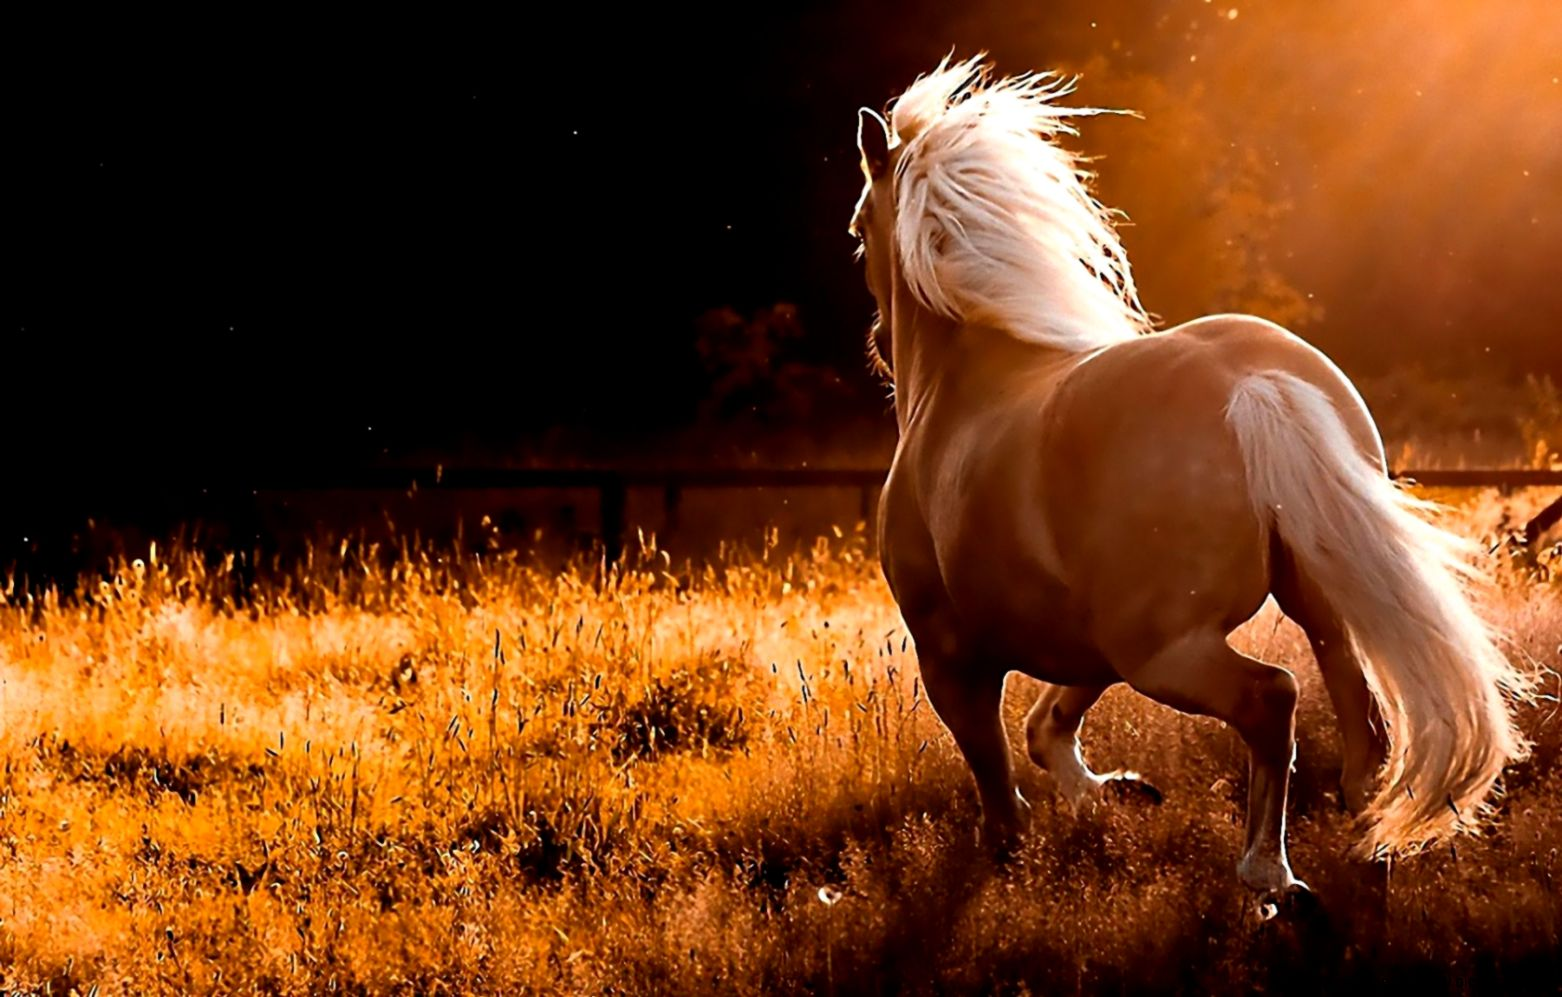 Download Name Nature Running Wild Horses Widescreen Wallpaper